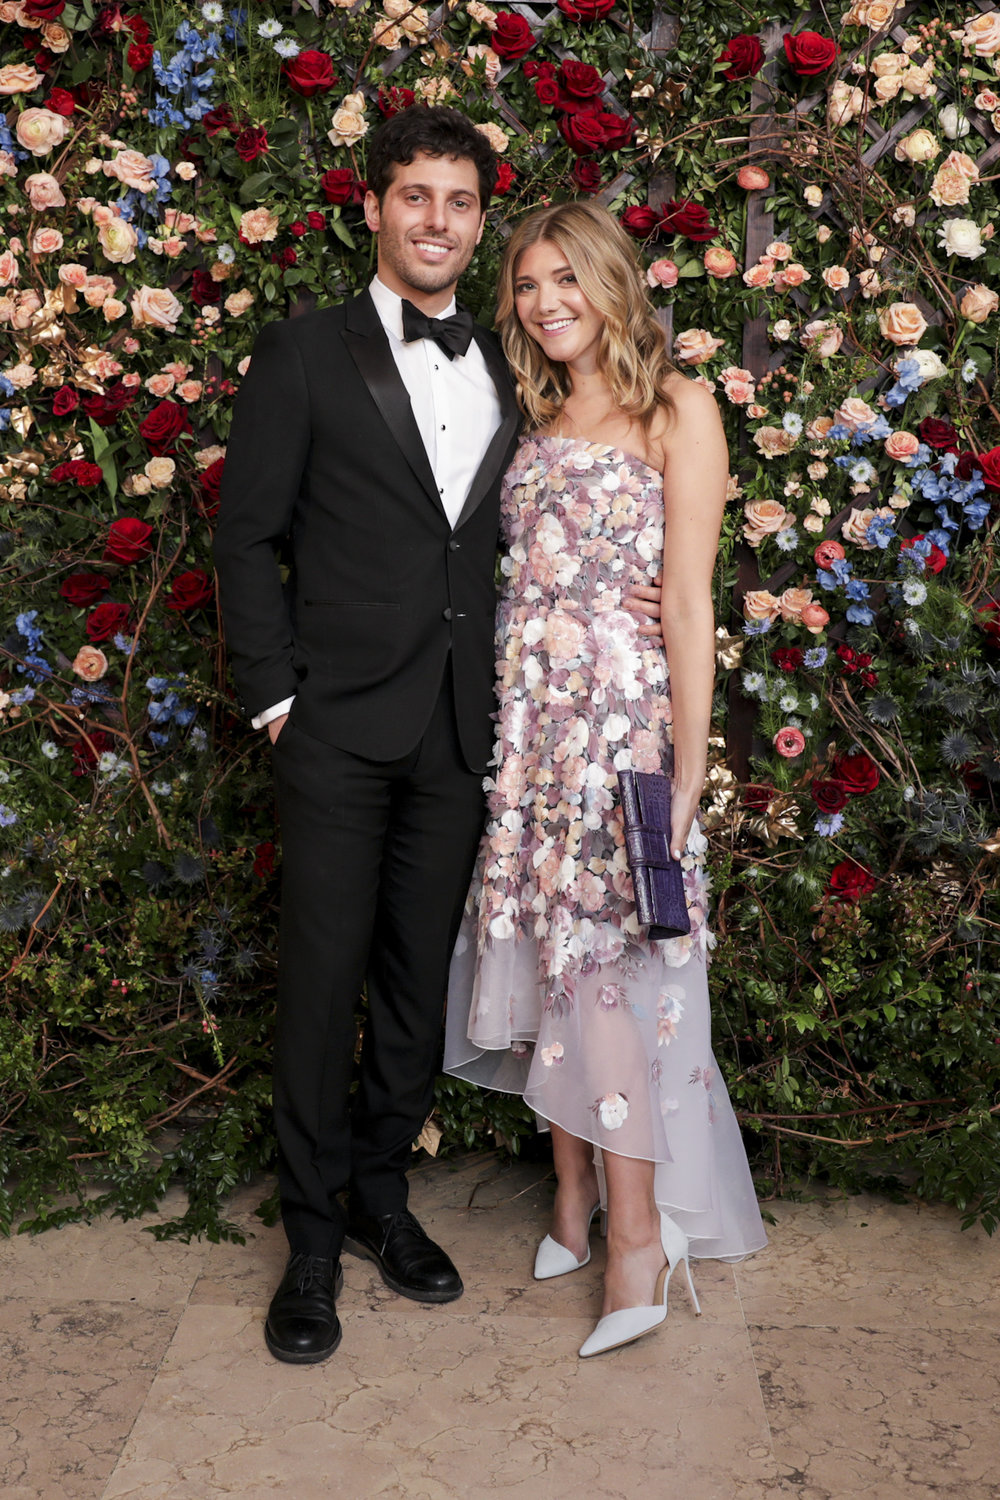 Brian Bochner and Katie Sands attend The Frick Collection's 20th Annual Young Fellows Ball at 1 East 70th Street on Thursday, March 21st, 2019. Photography, Courtesy of The Frick Collection.